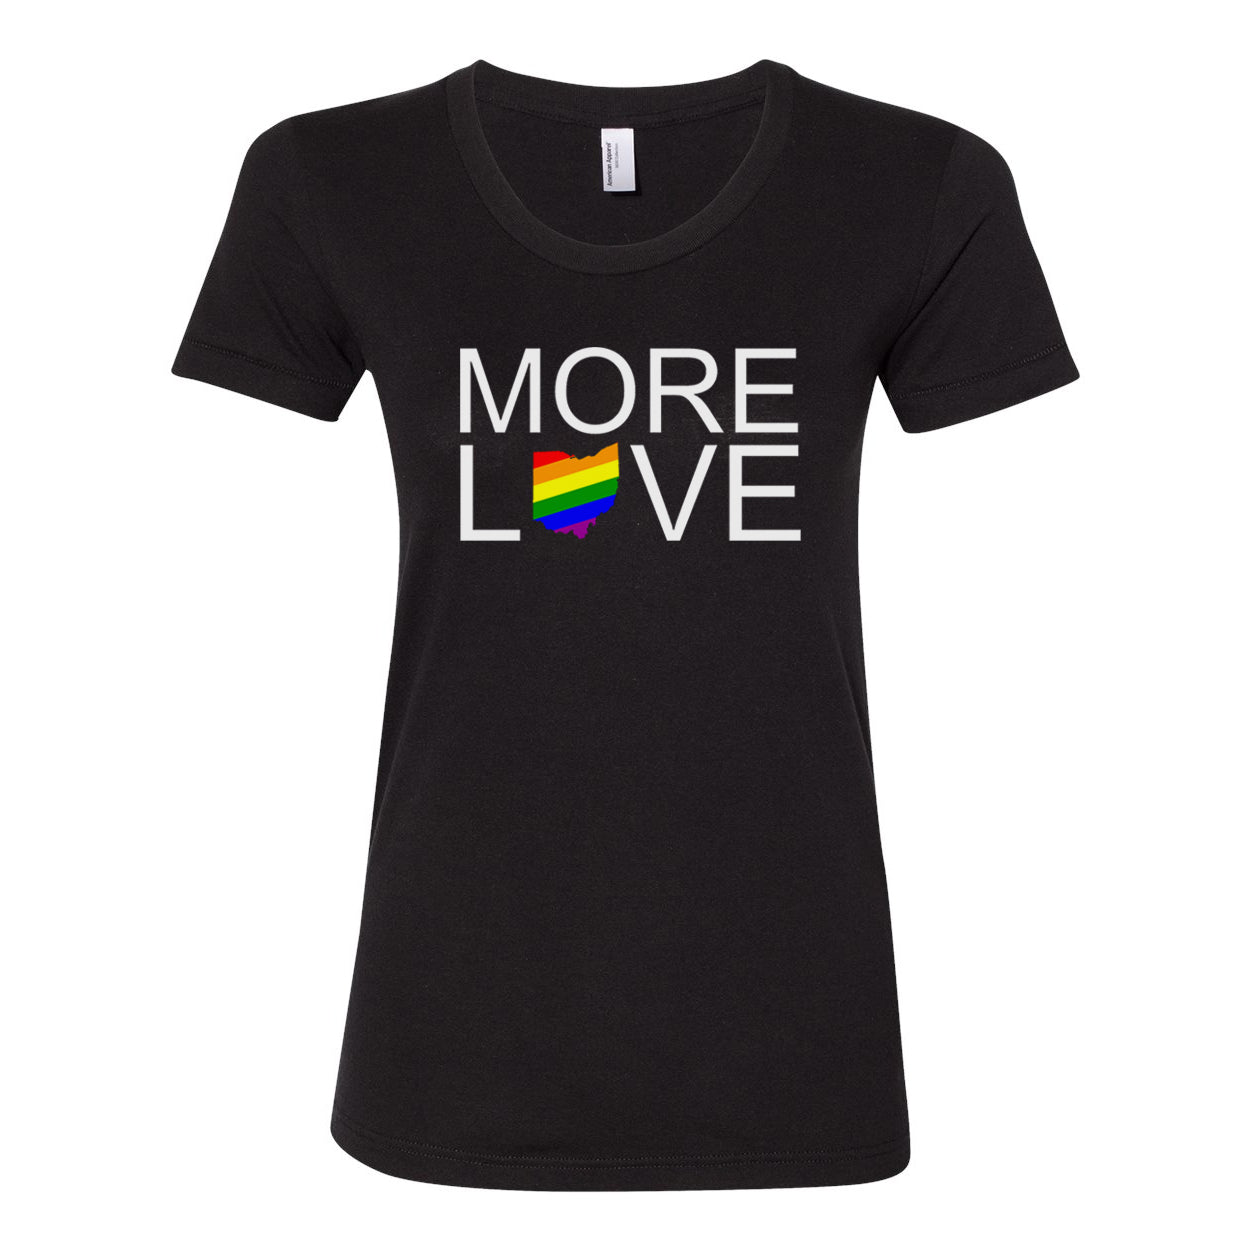 More Love Pride Ohio Women's Fit Soft Blend T-Shirt - Clothe Ohio - Soft Ohio Shirts